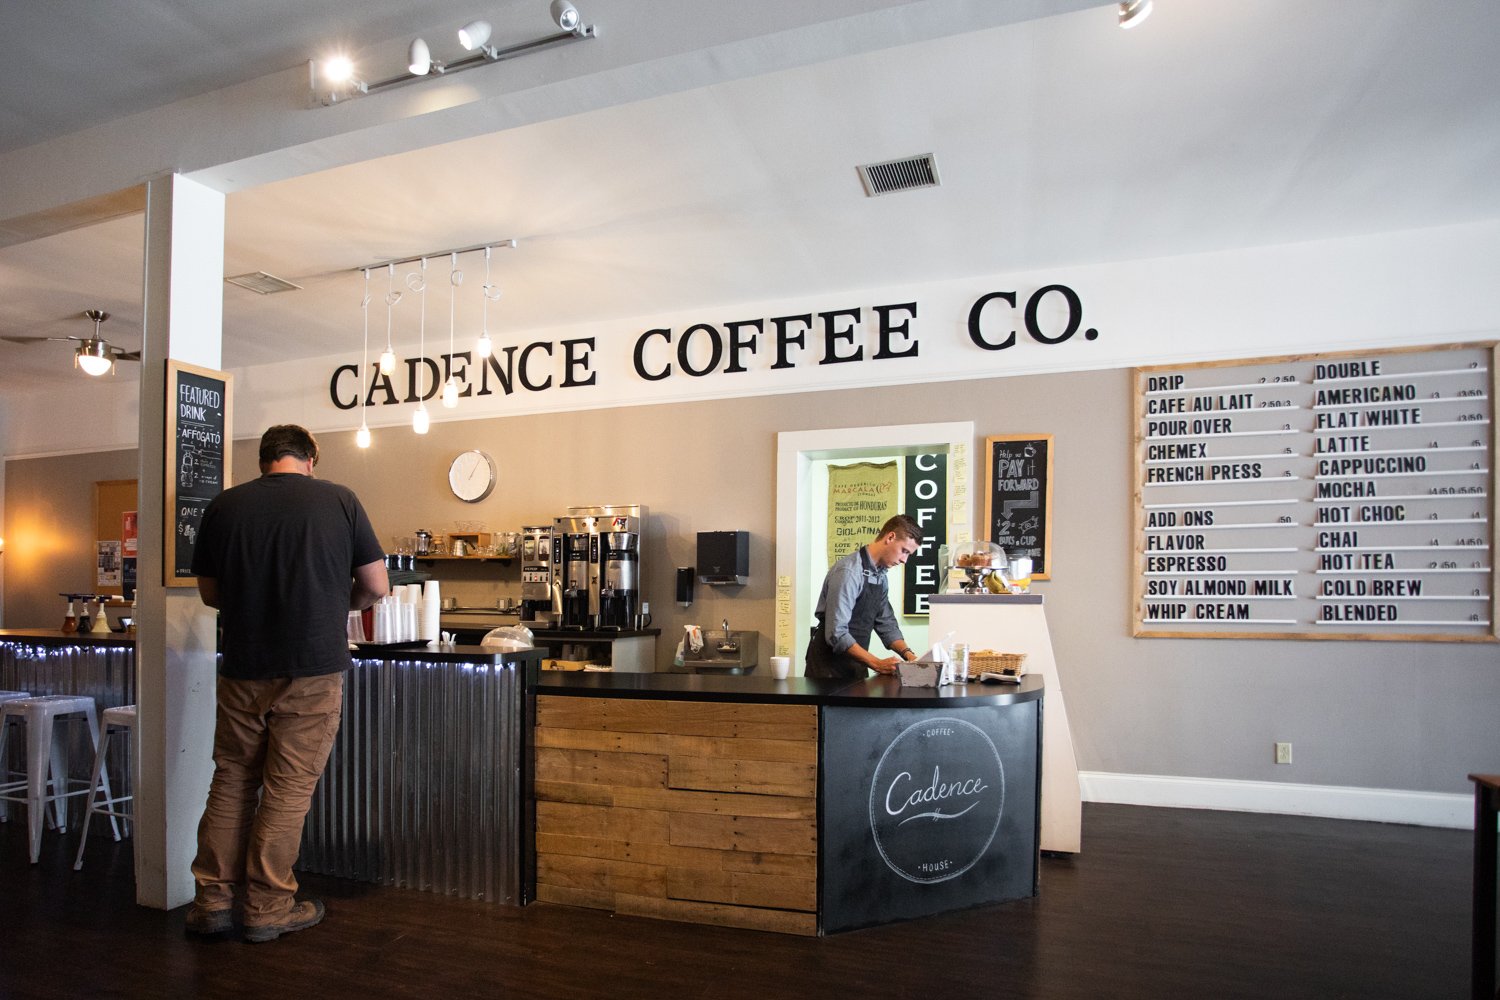 Cadence Coffee House in Chattanooga, TN.